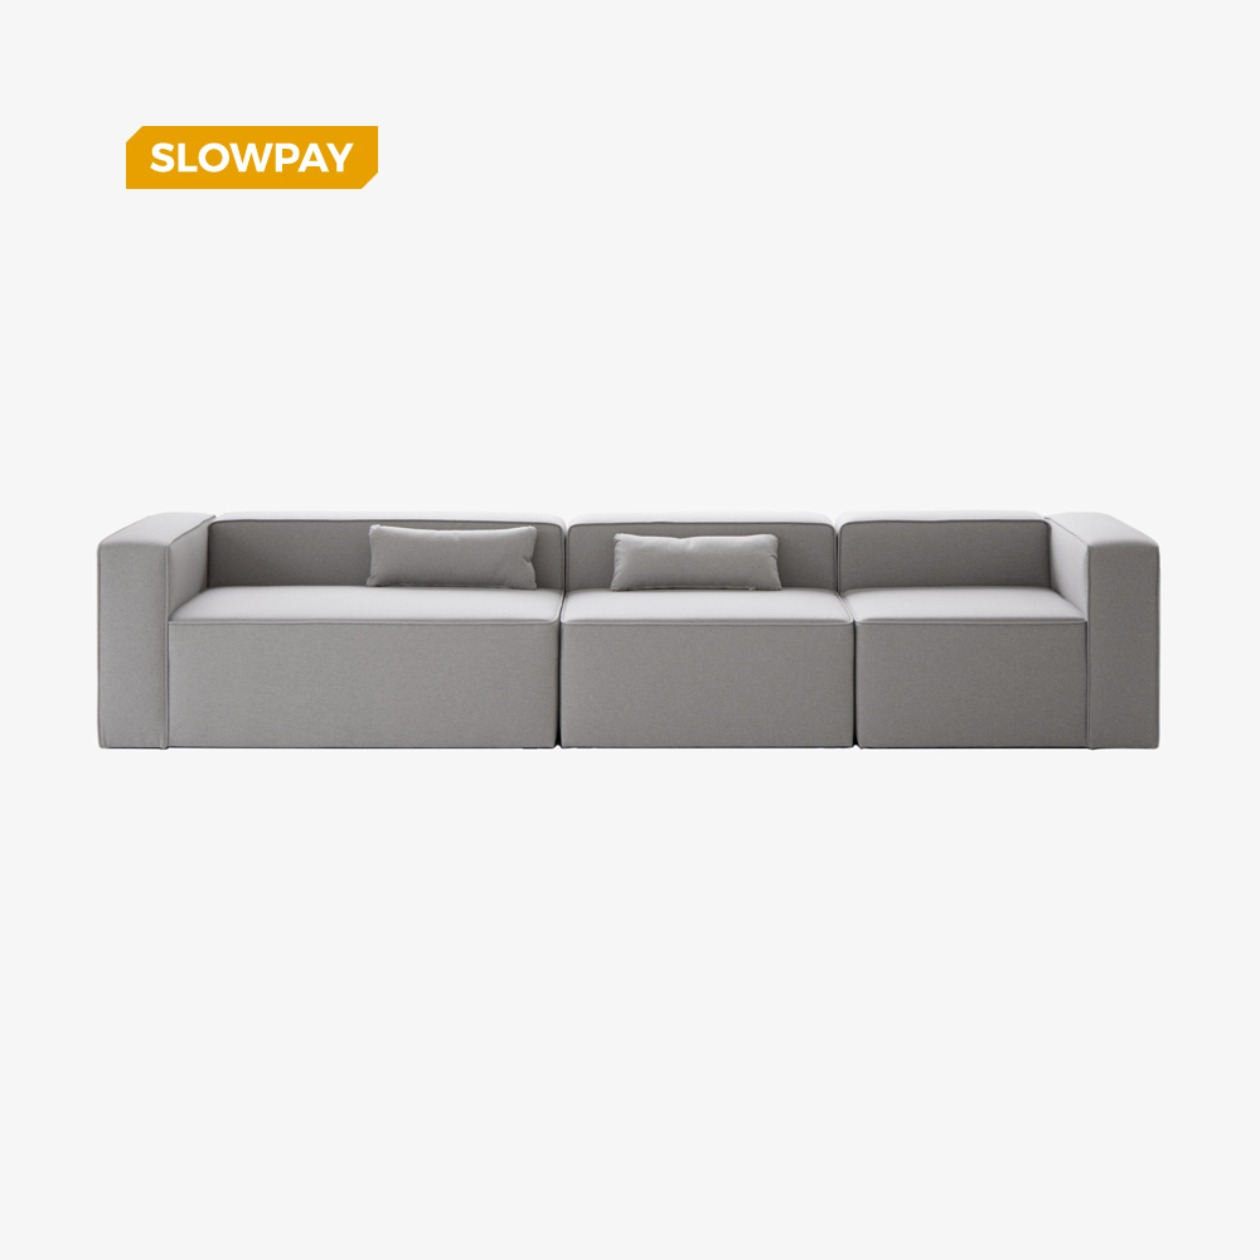 [SLOW PAY] TIMELESS SOFA A+B+D